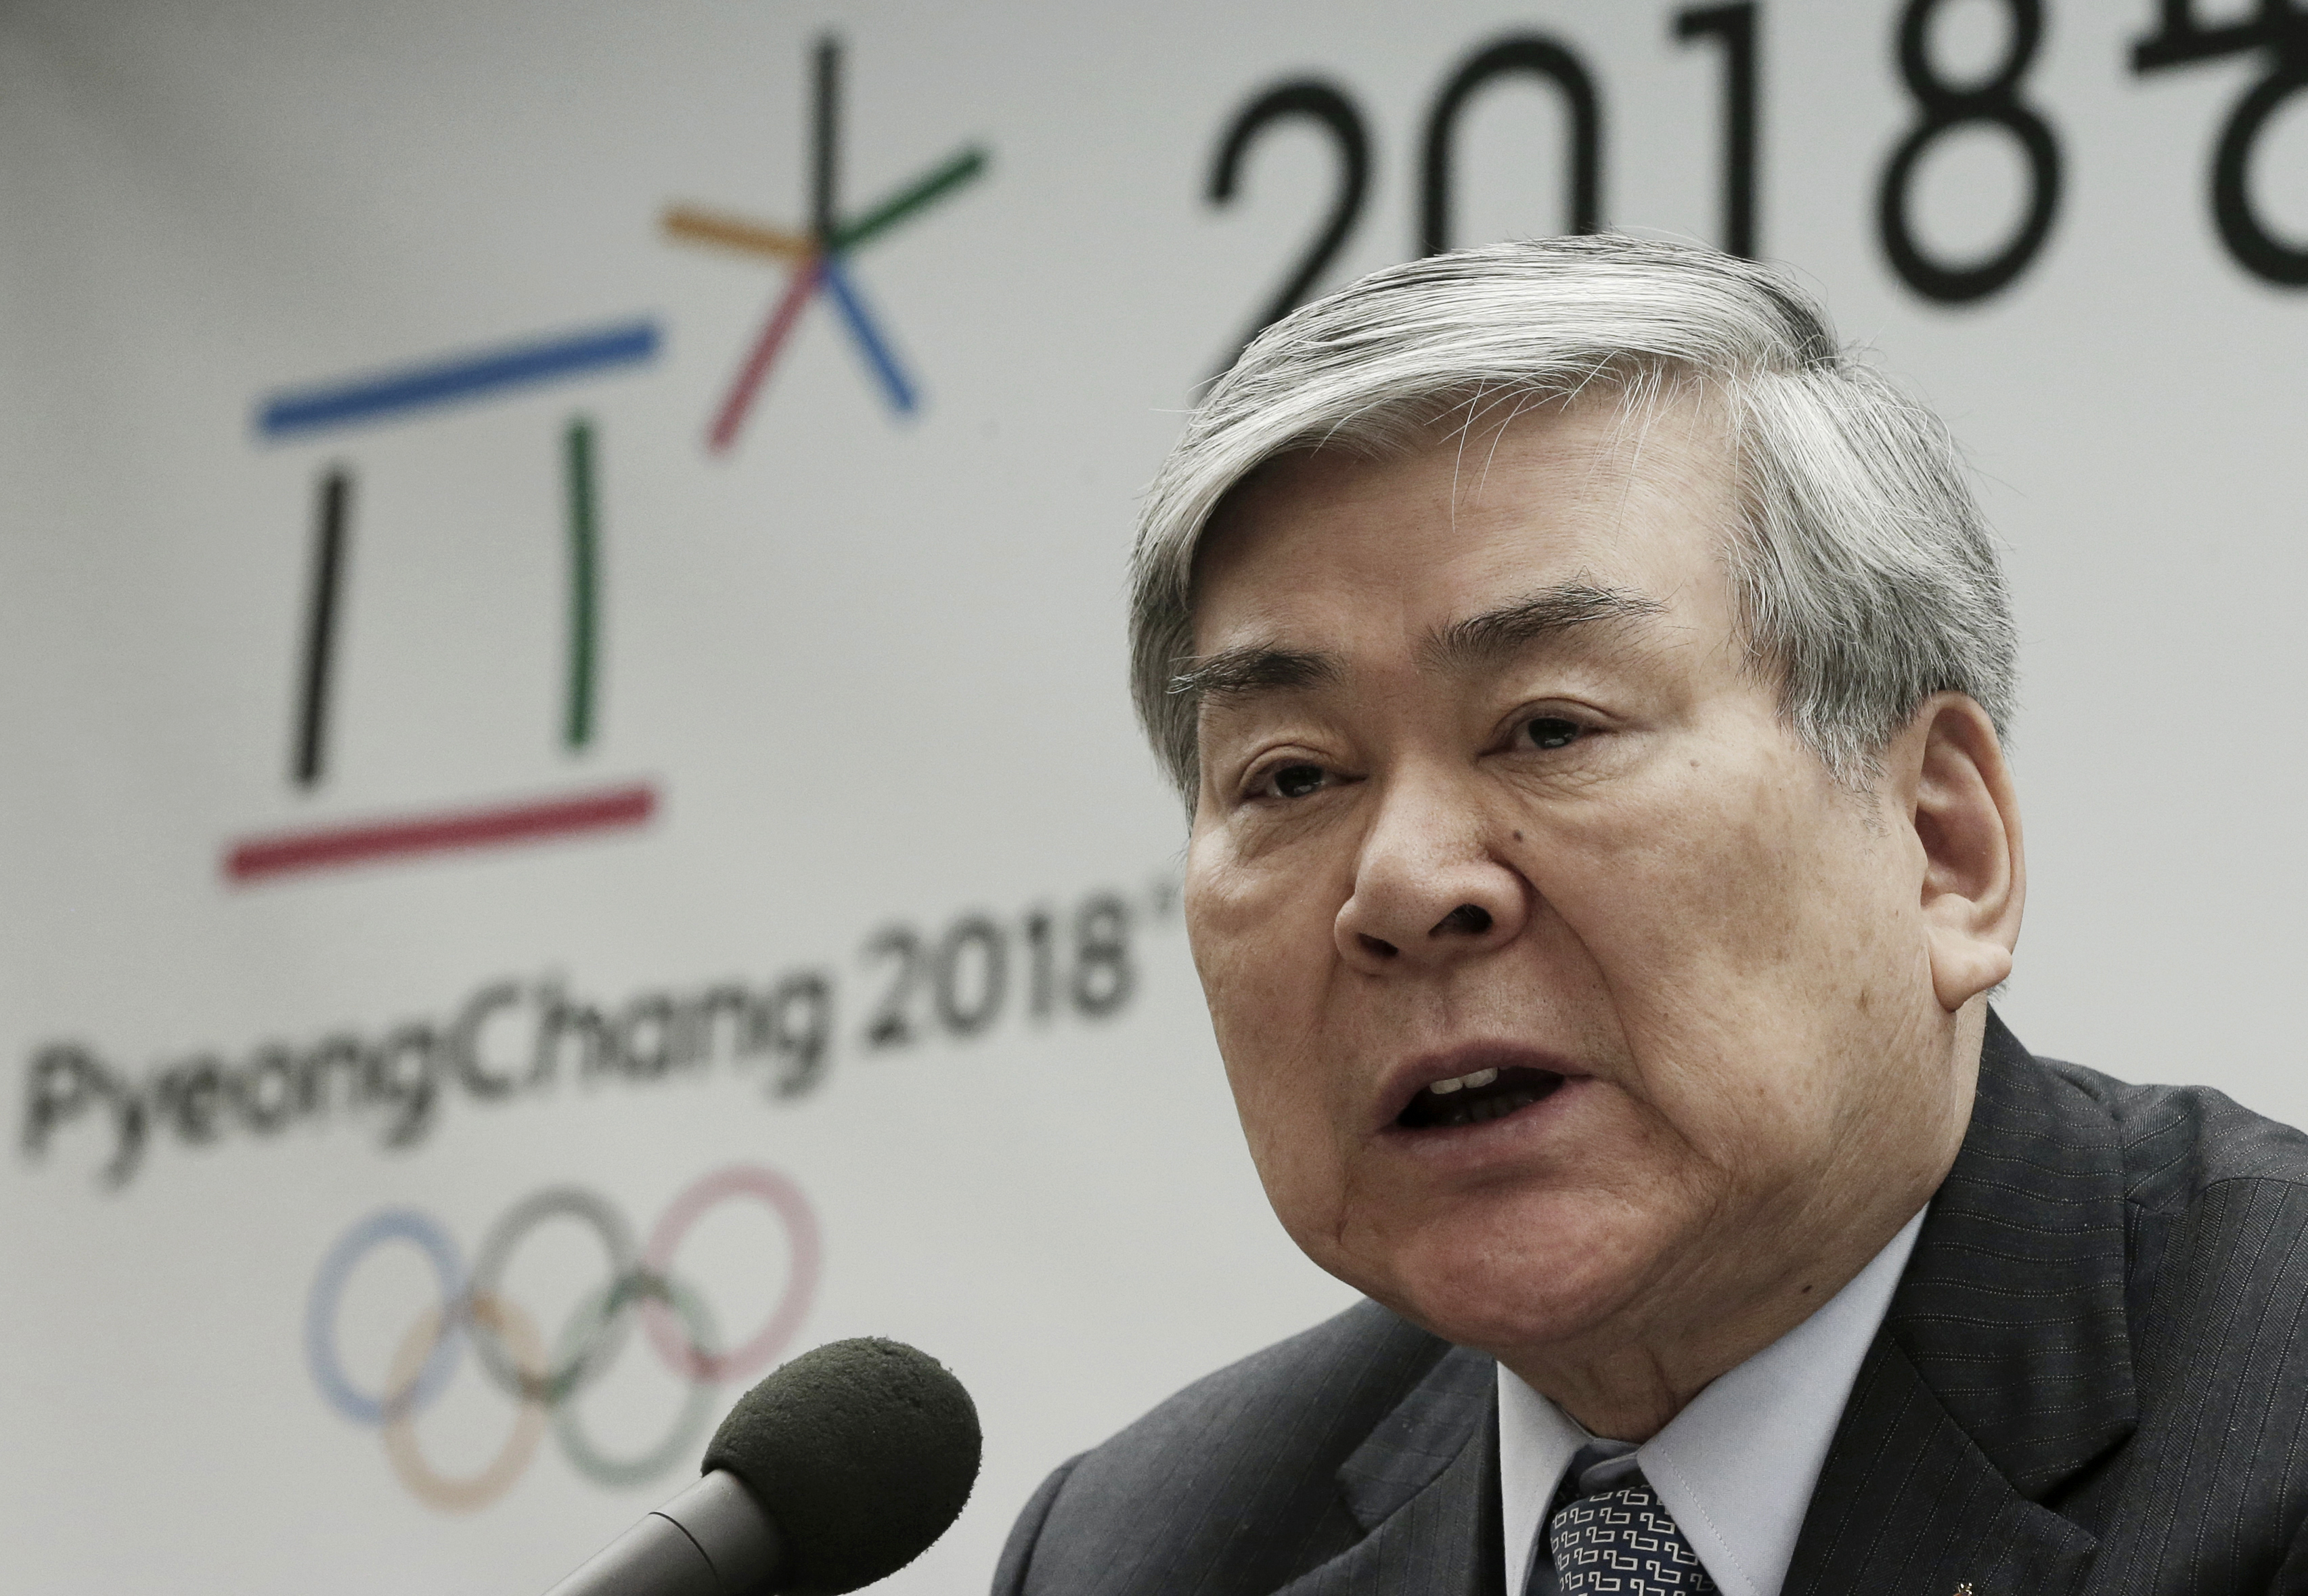 FILE - In this Feb. 3, 2016, file photo, Cho Yang-ho, president of the Pyeongchang 2018 Winter Olympics Organizing Committee, speaks during a press conference about the alpine skiing test event for the 2018 Pyeongchang Olympics in Jeongseon, at the Press